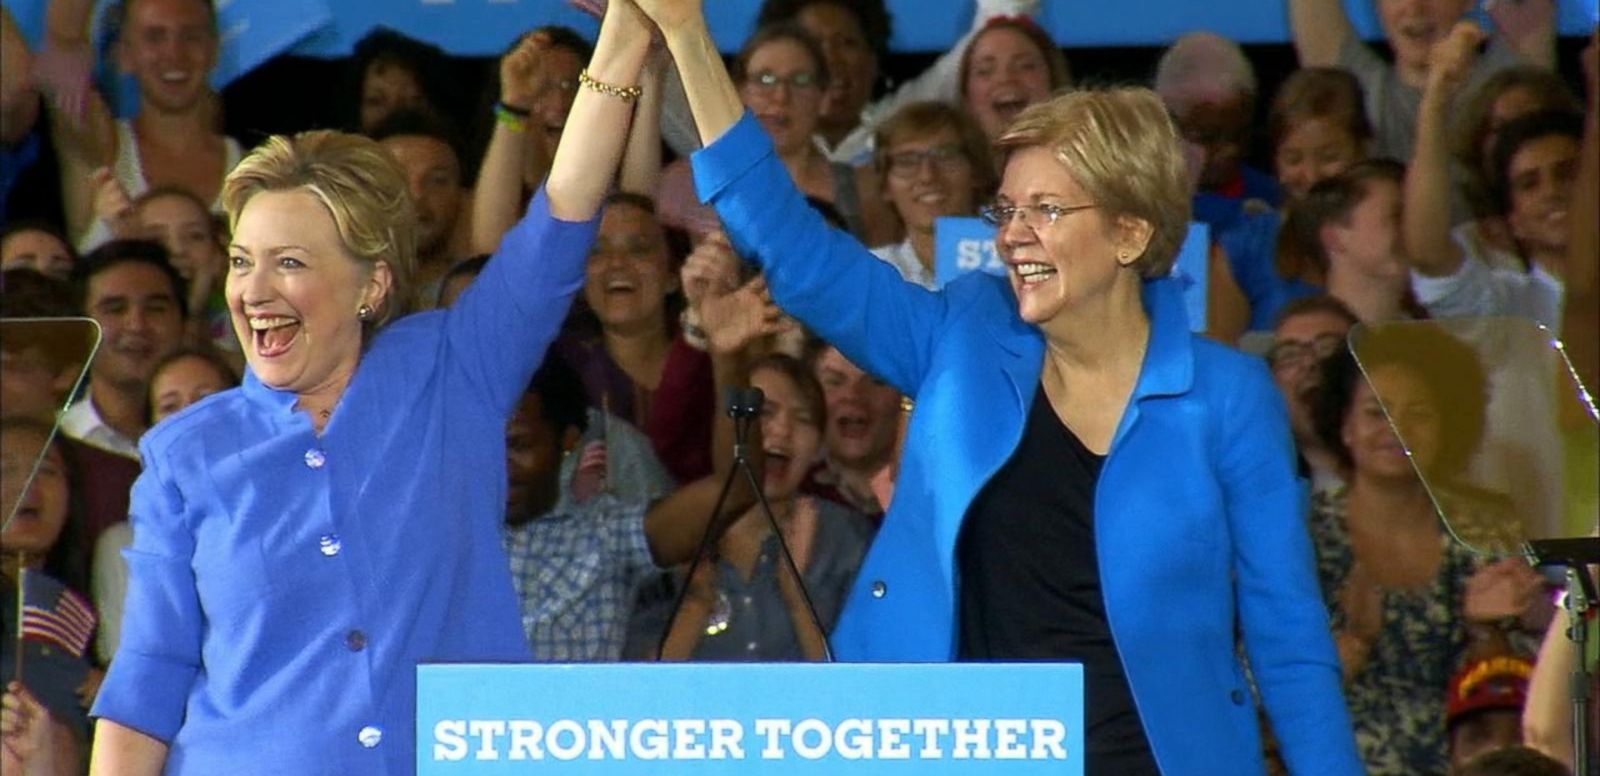 VIDEO: Elizabeth Warren on the Campaign Trail With Hillary Clinton